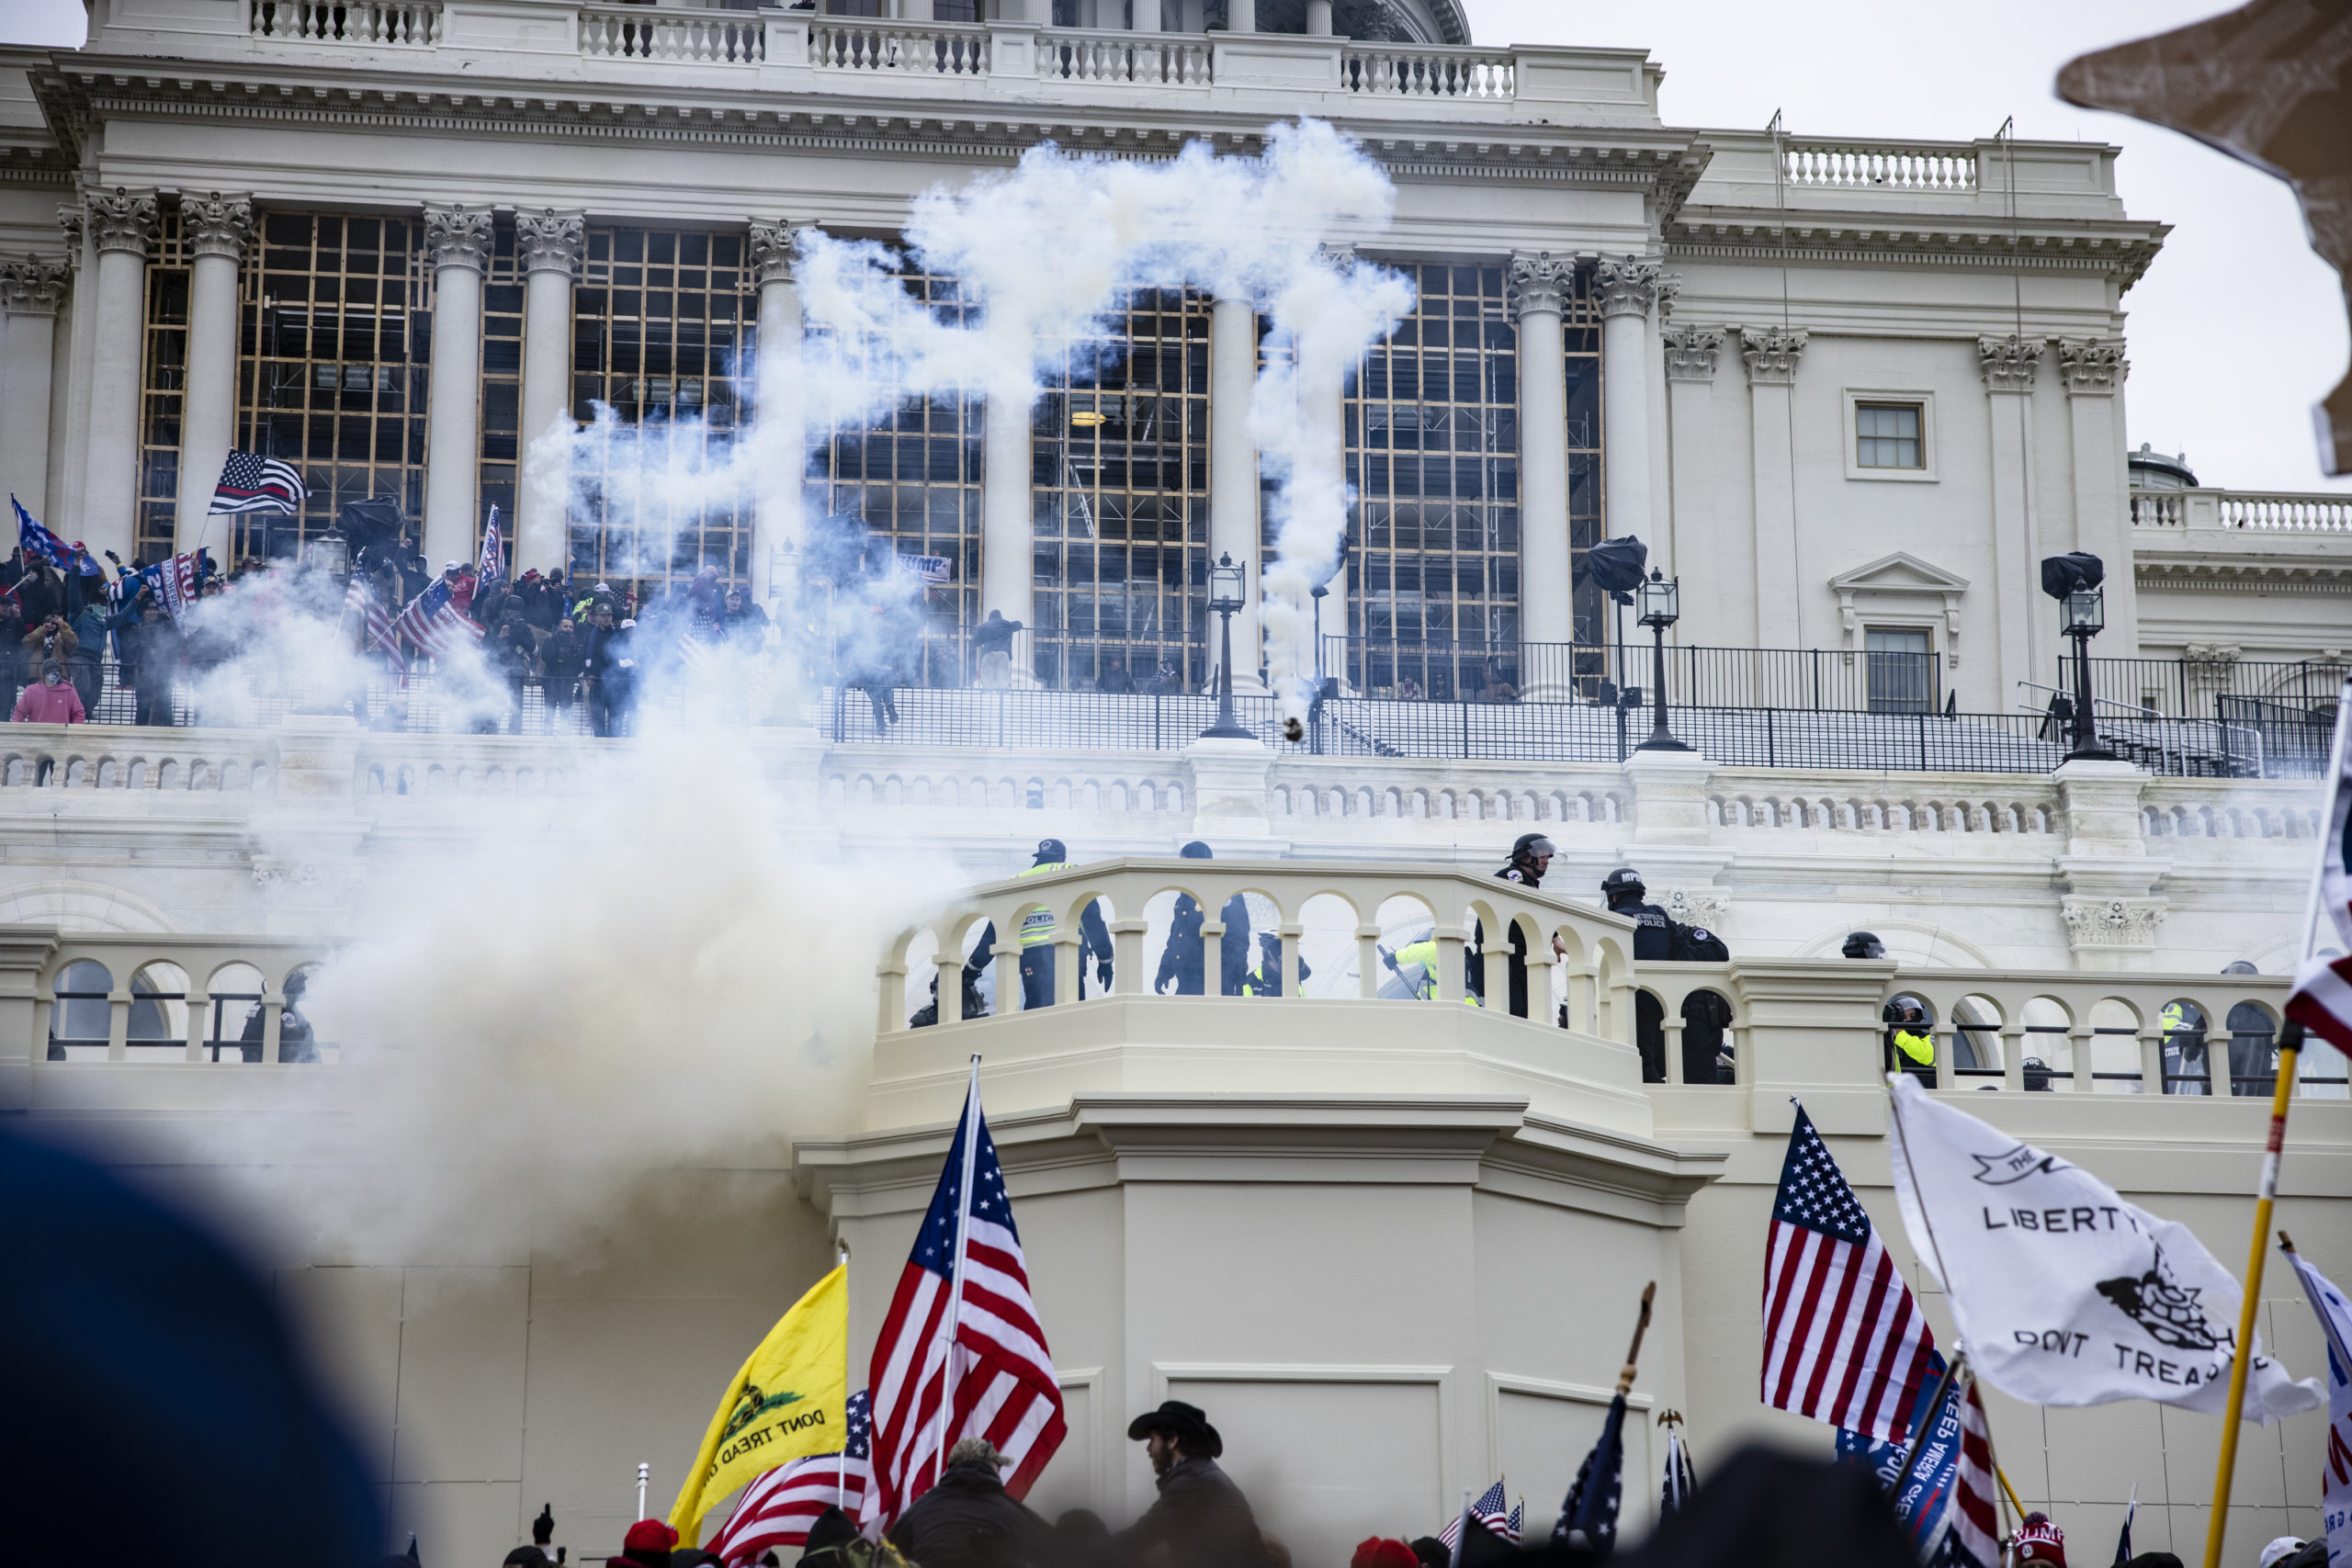 Pro-Trump supporters storm the U.S. Capitol following a rally with President Donald Trump on January 6, 2021 in Washington, DC. (Photo by Samuel Corum/Getty Images)